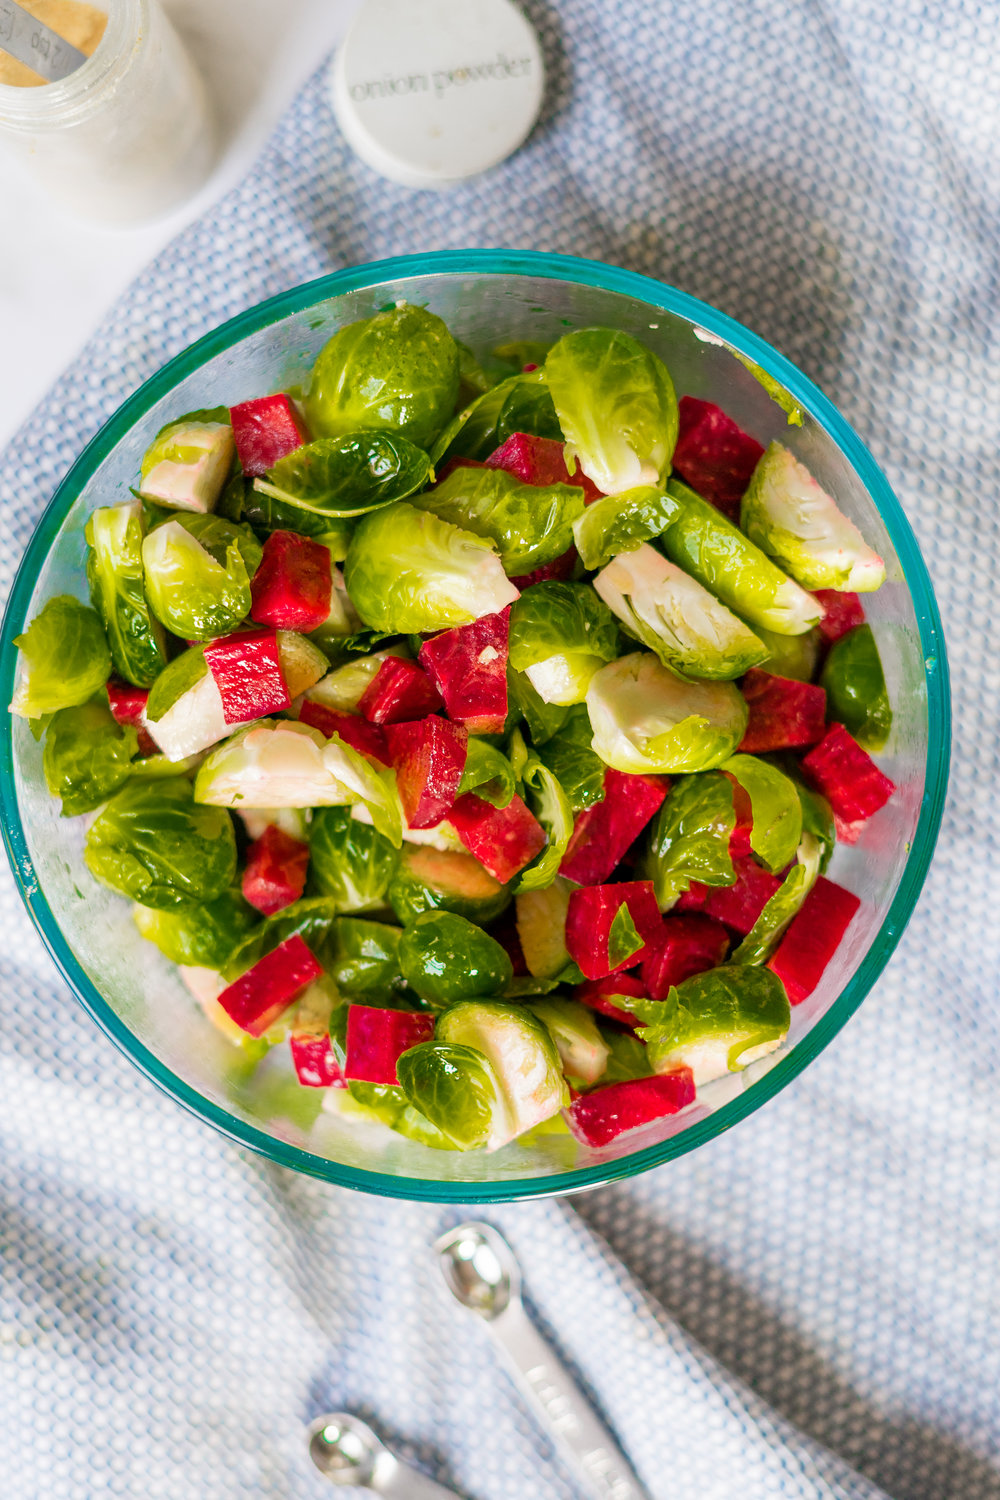 brussels sprouts, brussels sprout salad, recipe using brussels sprouts, how to cook brussels sprouts, vegan salad, vegan bacon, vegan bacon recipes, pistachios, summer salad recipe, vegan summer salad recipe, roasted vegetable salad, roasted vegetable salad recipe, vegan recipes, i am rorie, i am rorie vegan, recipe using pistachios, how to cook beets, easy vegan summer recipe, vegan parmesan, food photography